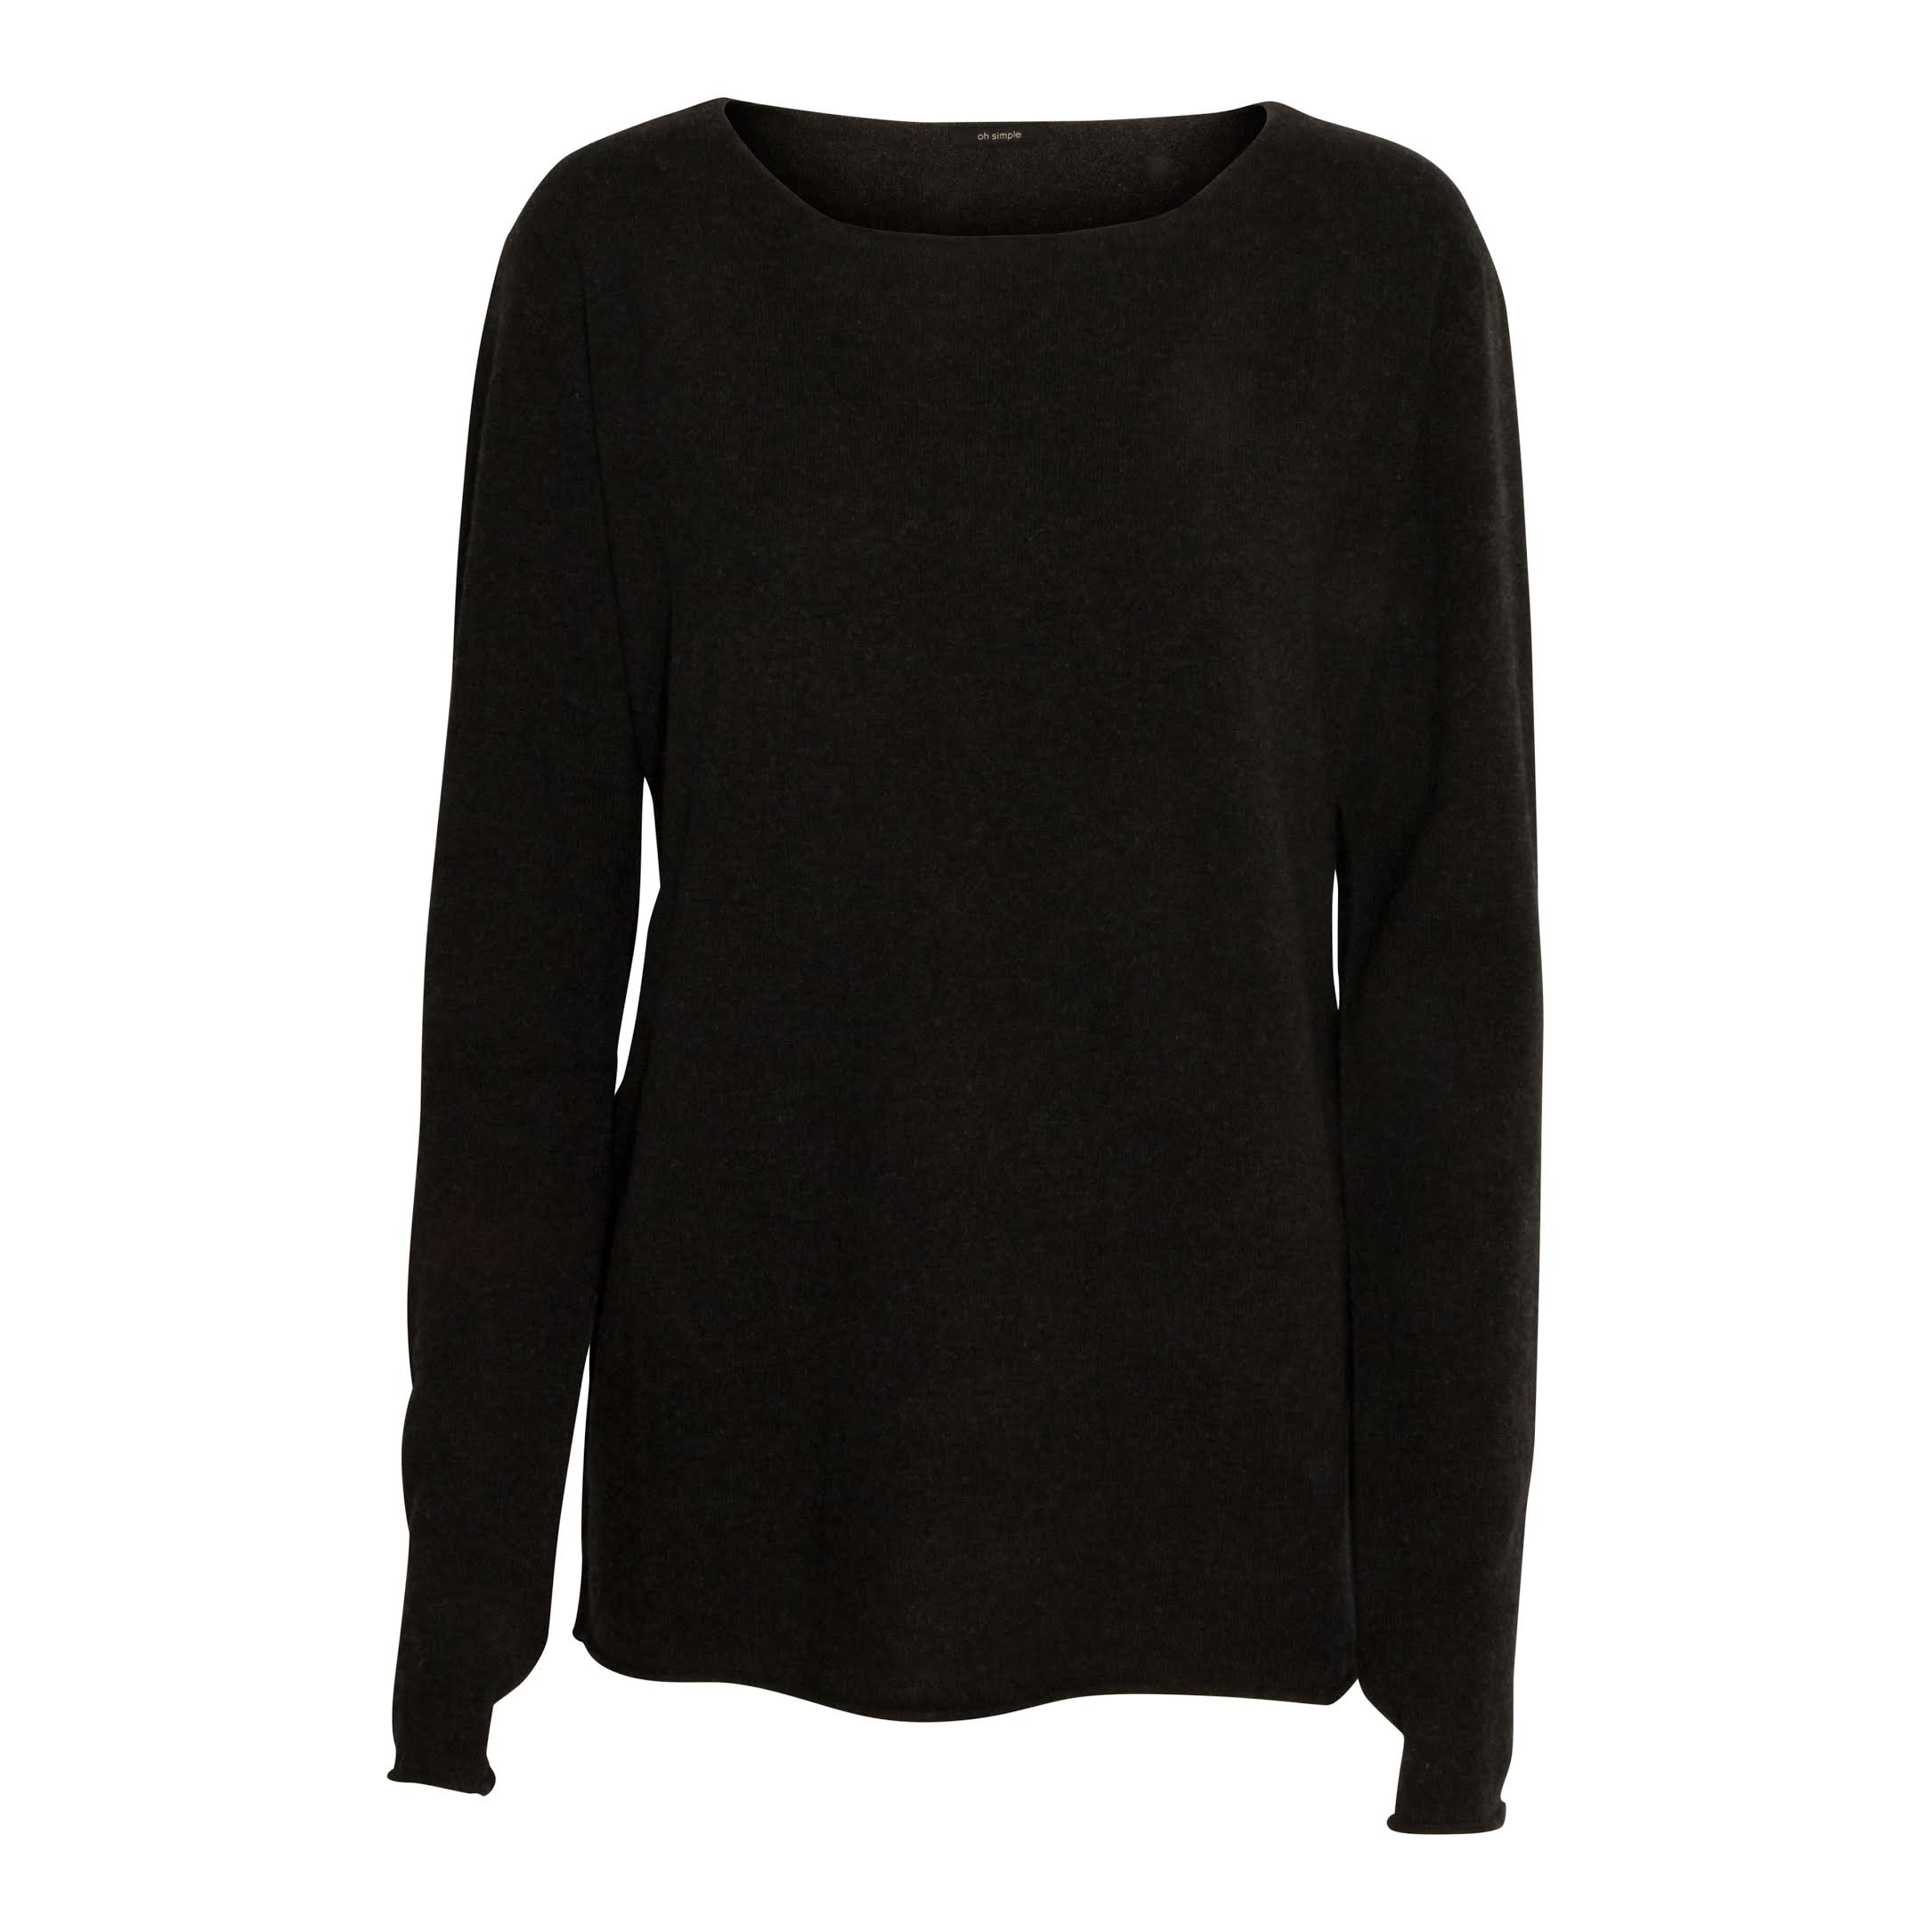 Warm charcoal cashmere-blend sweater